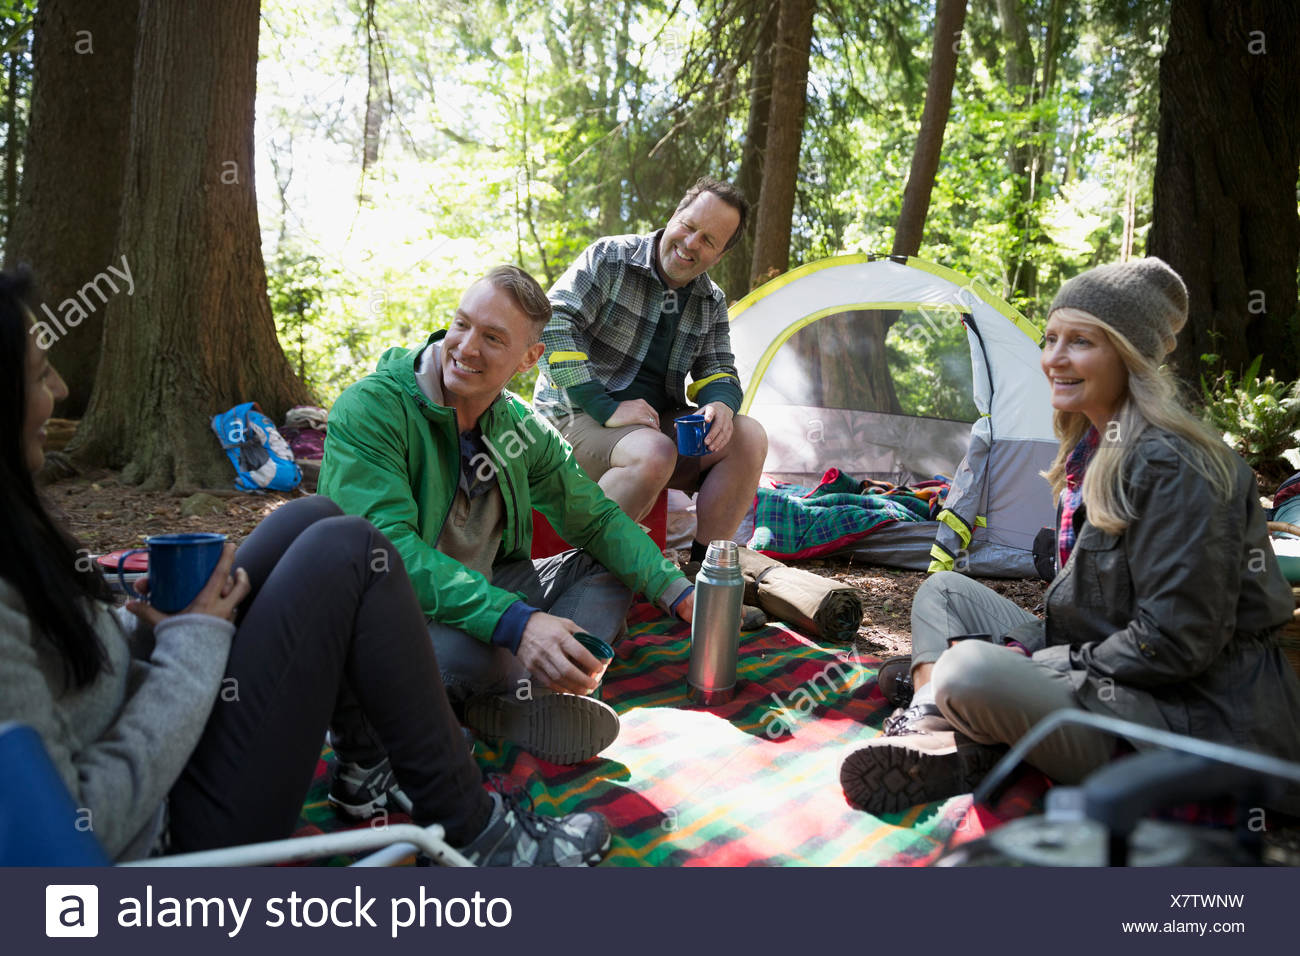 Friends talking and relaxing at campsite - Stock Image